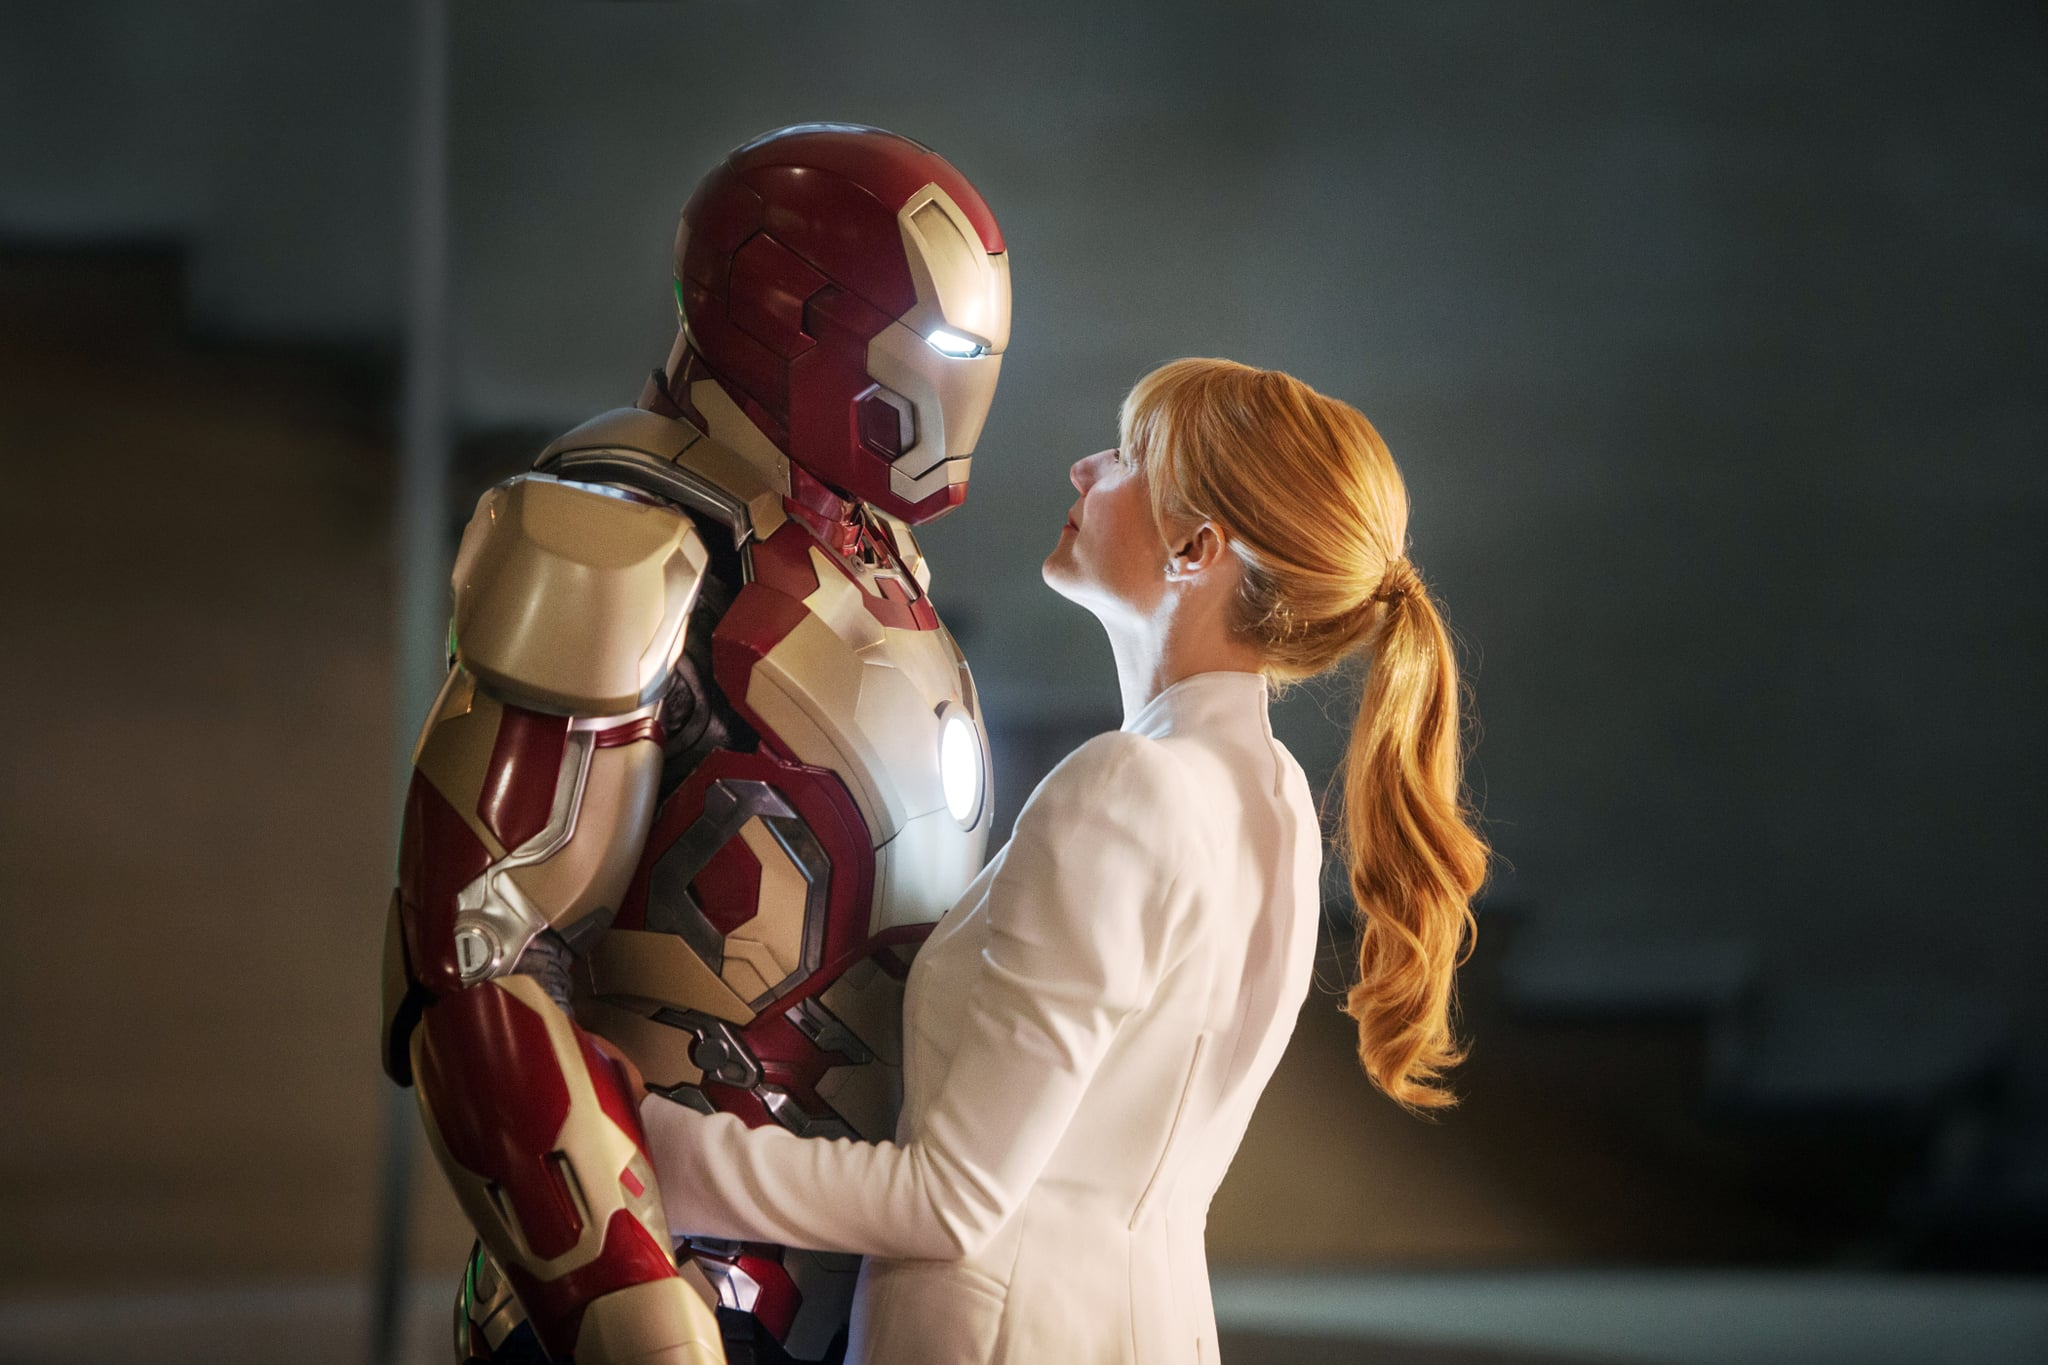 IRON MAN 3, from left: Robert Downey Jr., as Iron Man, Gwyneth Paltrow, 2013. Walt Disney Pictures/courtesy Everett Collection